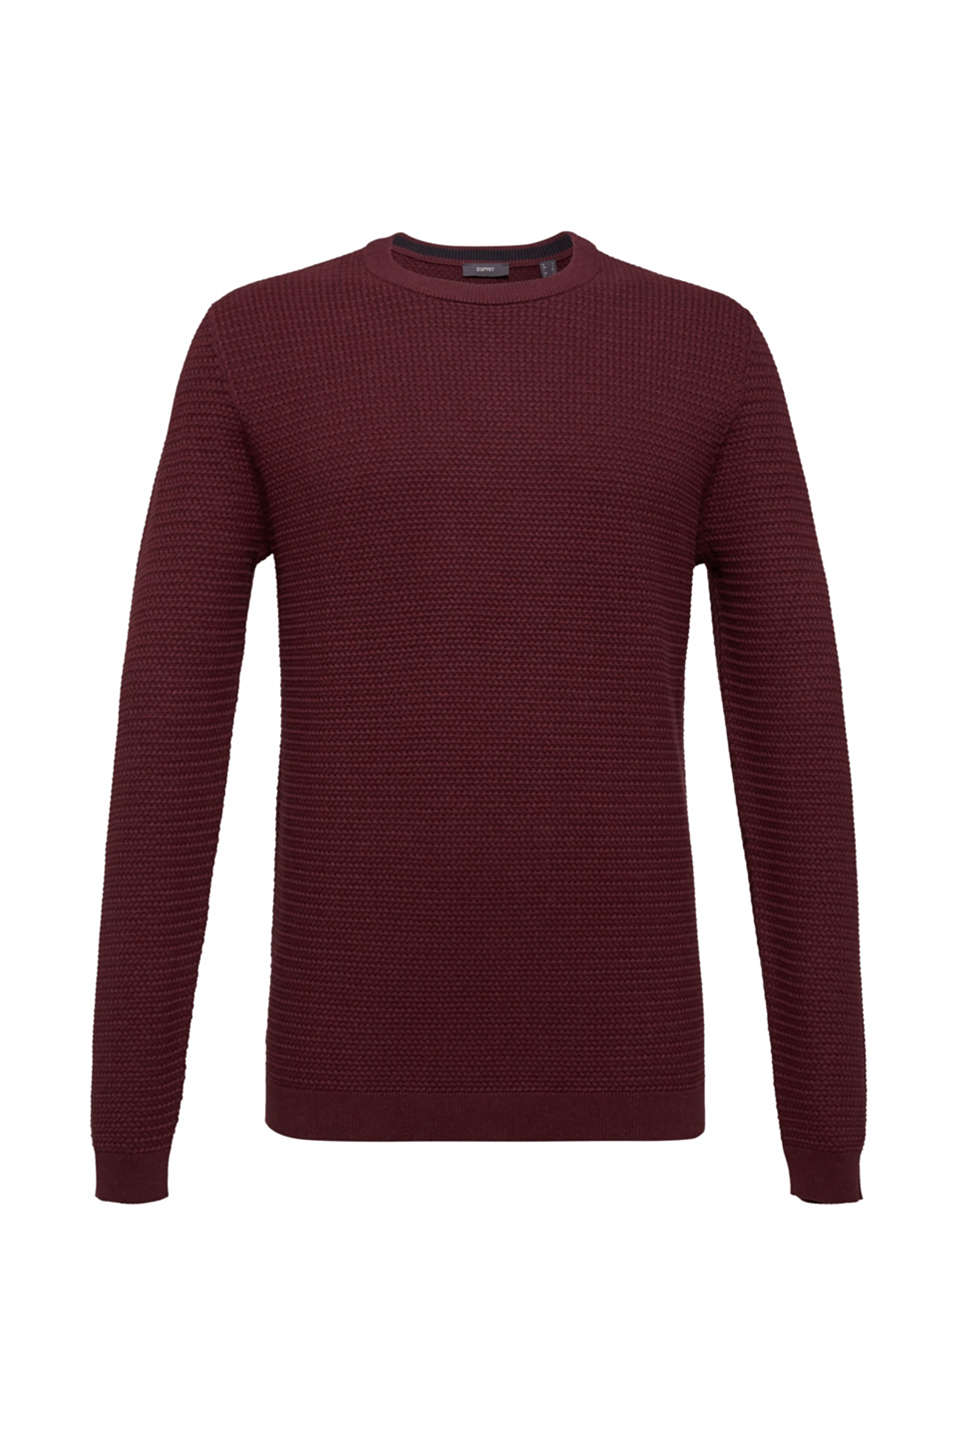 Textured jumper made of 100% cotton, BORDEAUX RED 5, detail image number 6